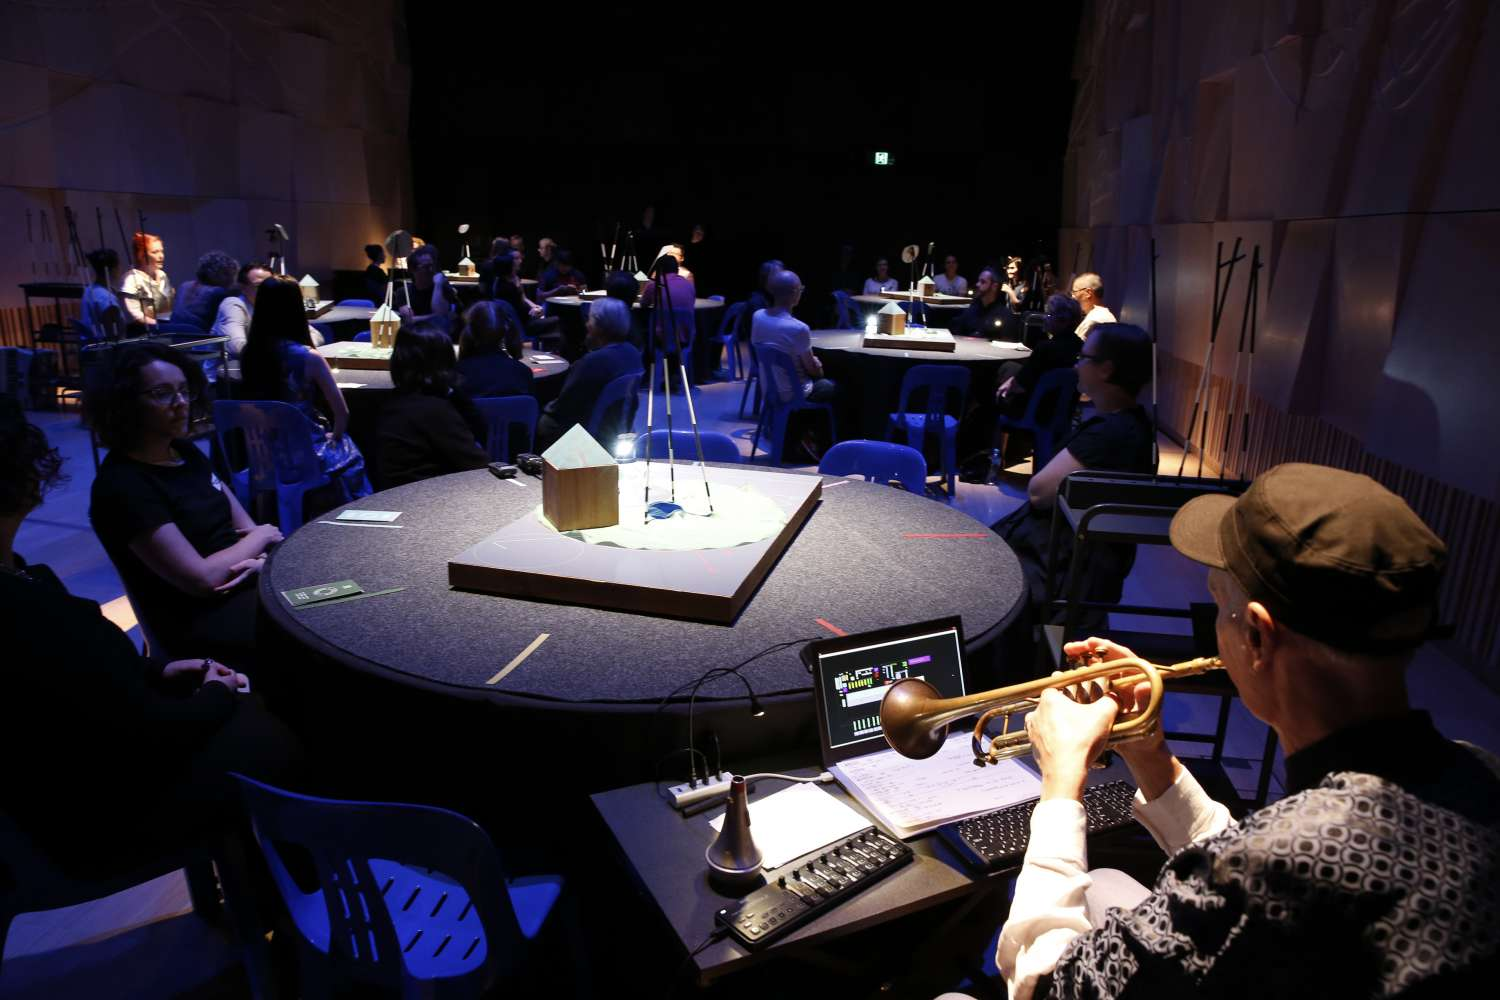 A performance space with audience seated around round tables